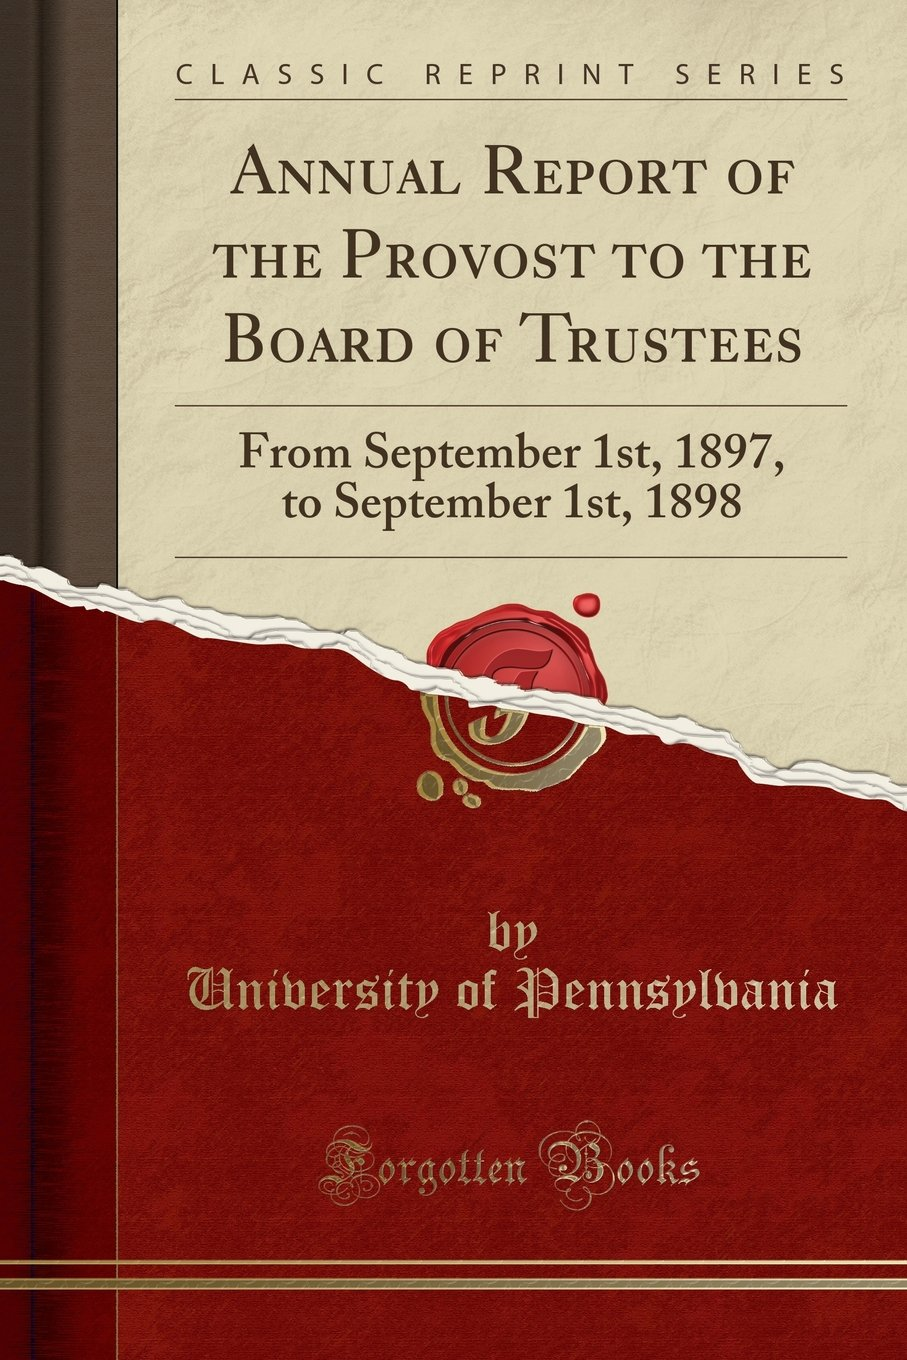 Annual Report of the Provost to the Board of Trustees: From September 1st, 1897, to September 1st, 1898 (Classic Reprint) pdf